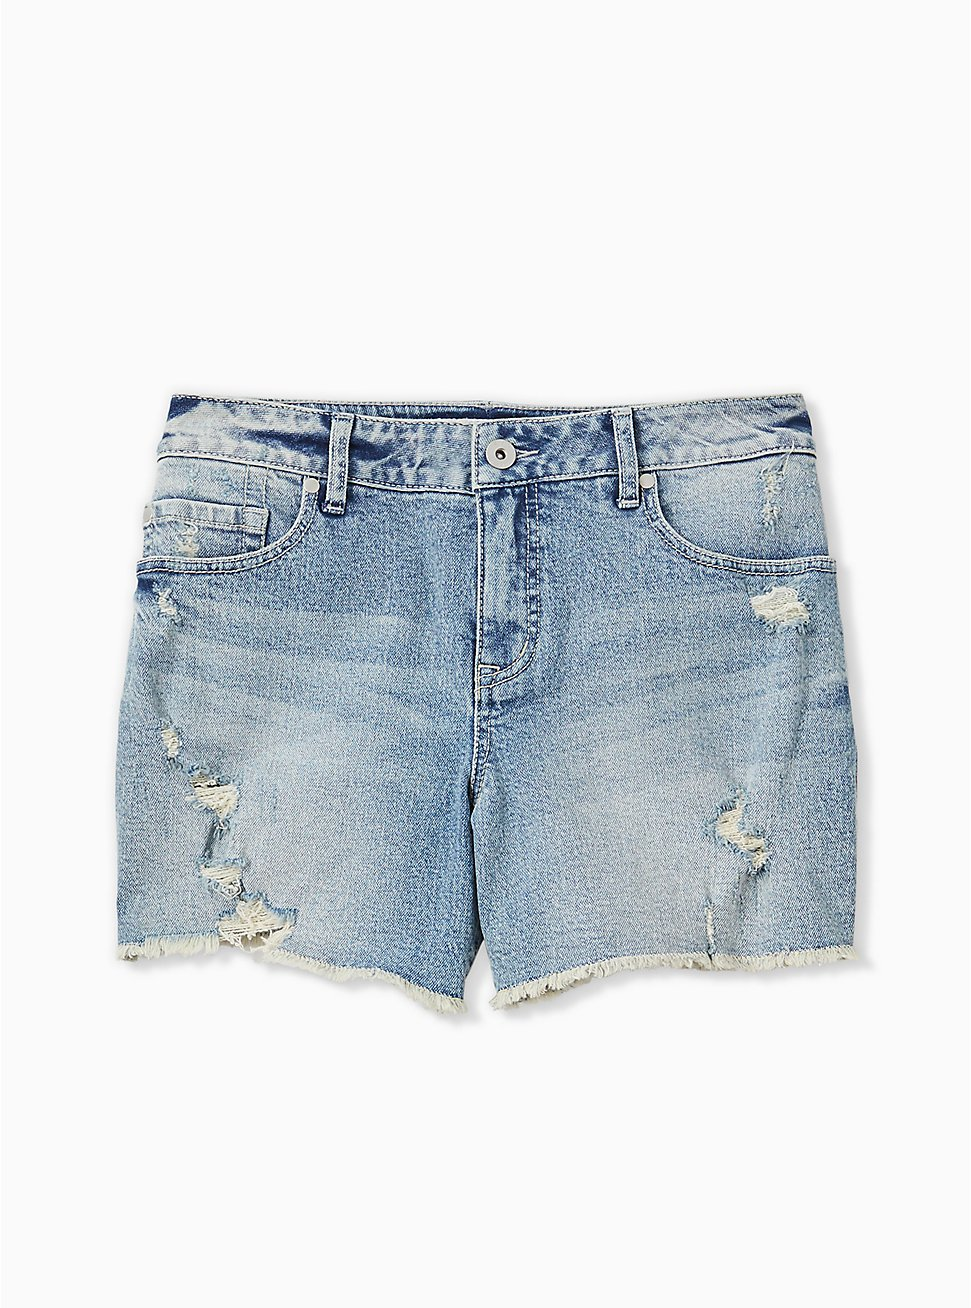 Mid Short - Medium Wash, WHATS YOUR DAMAGE, hi-res